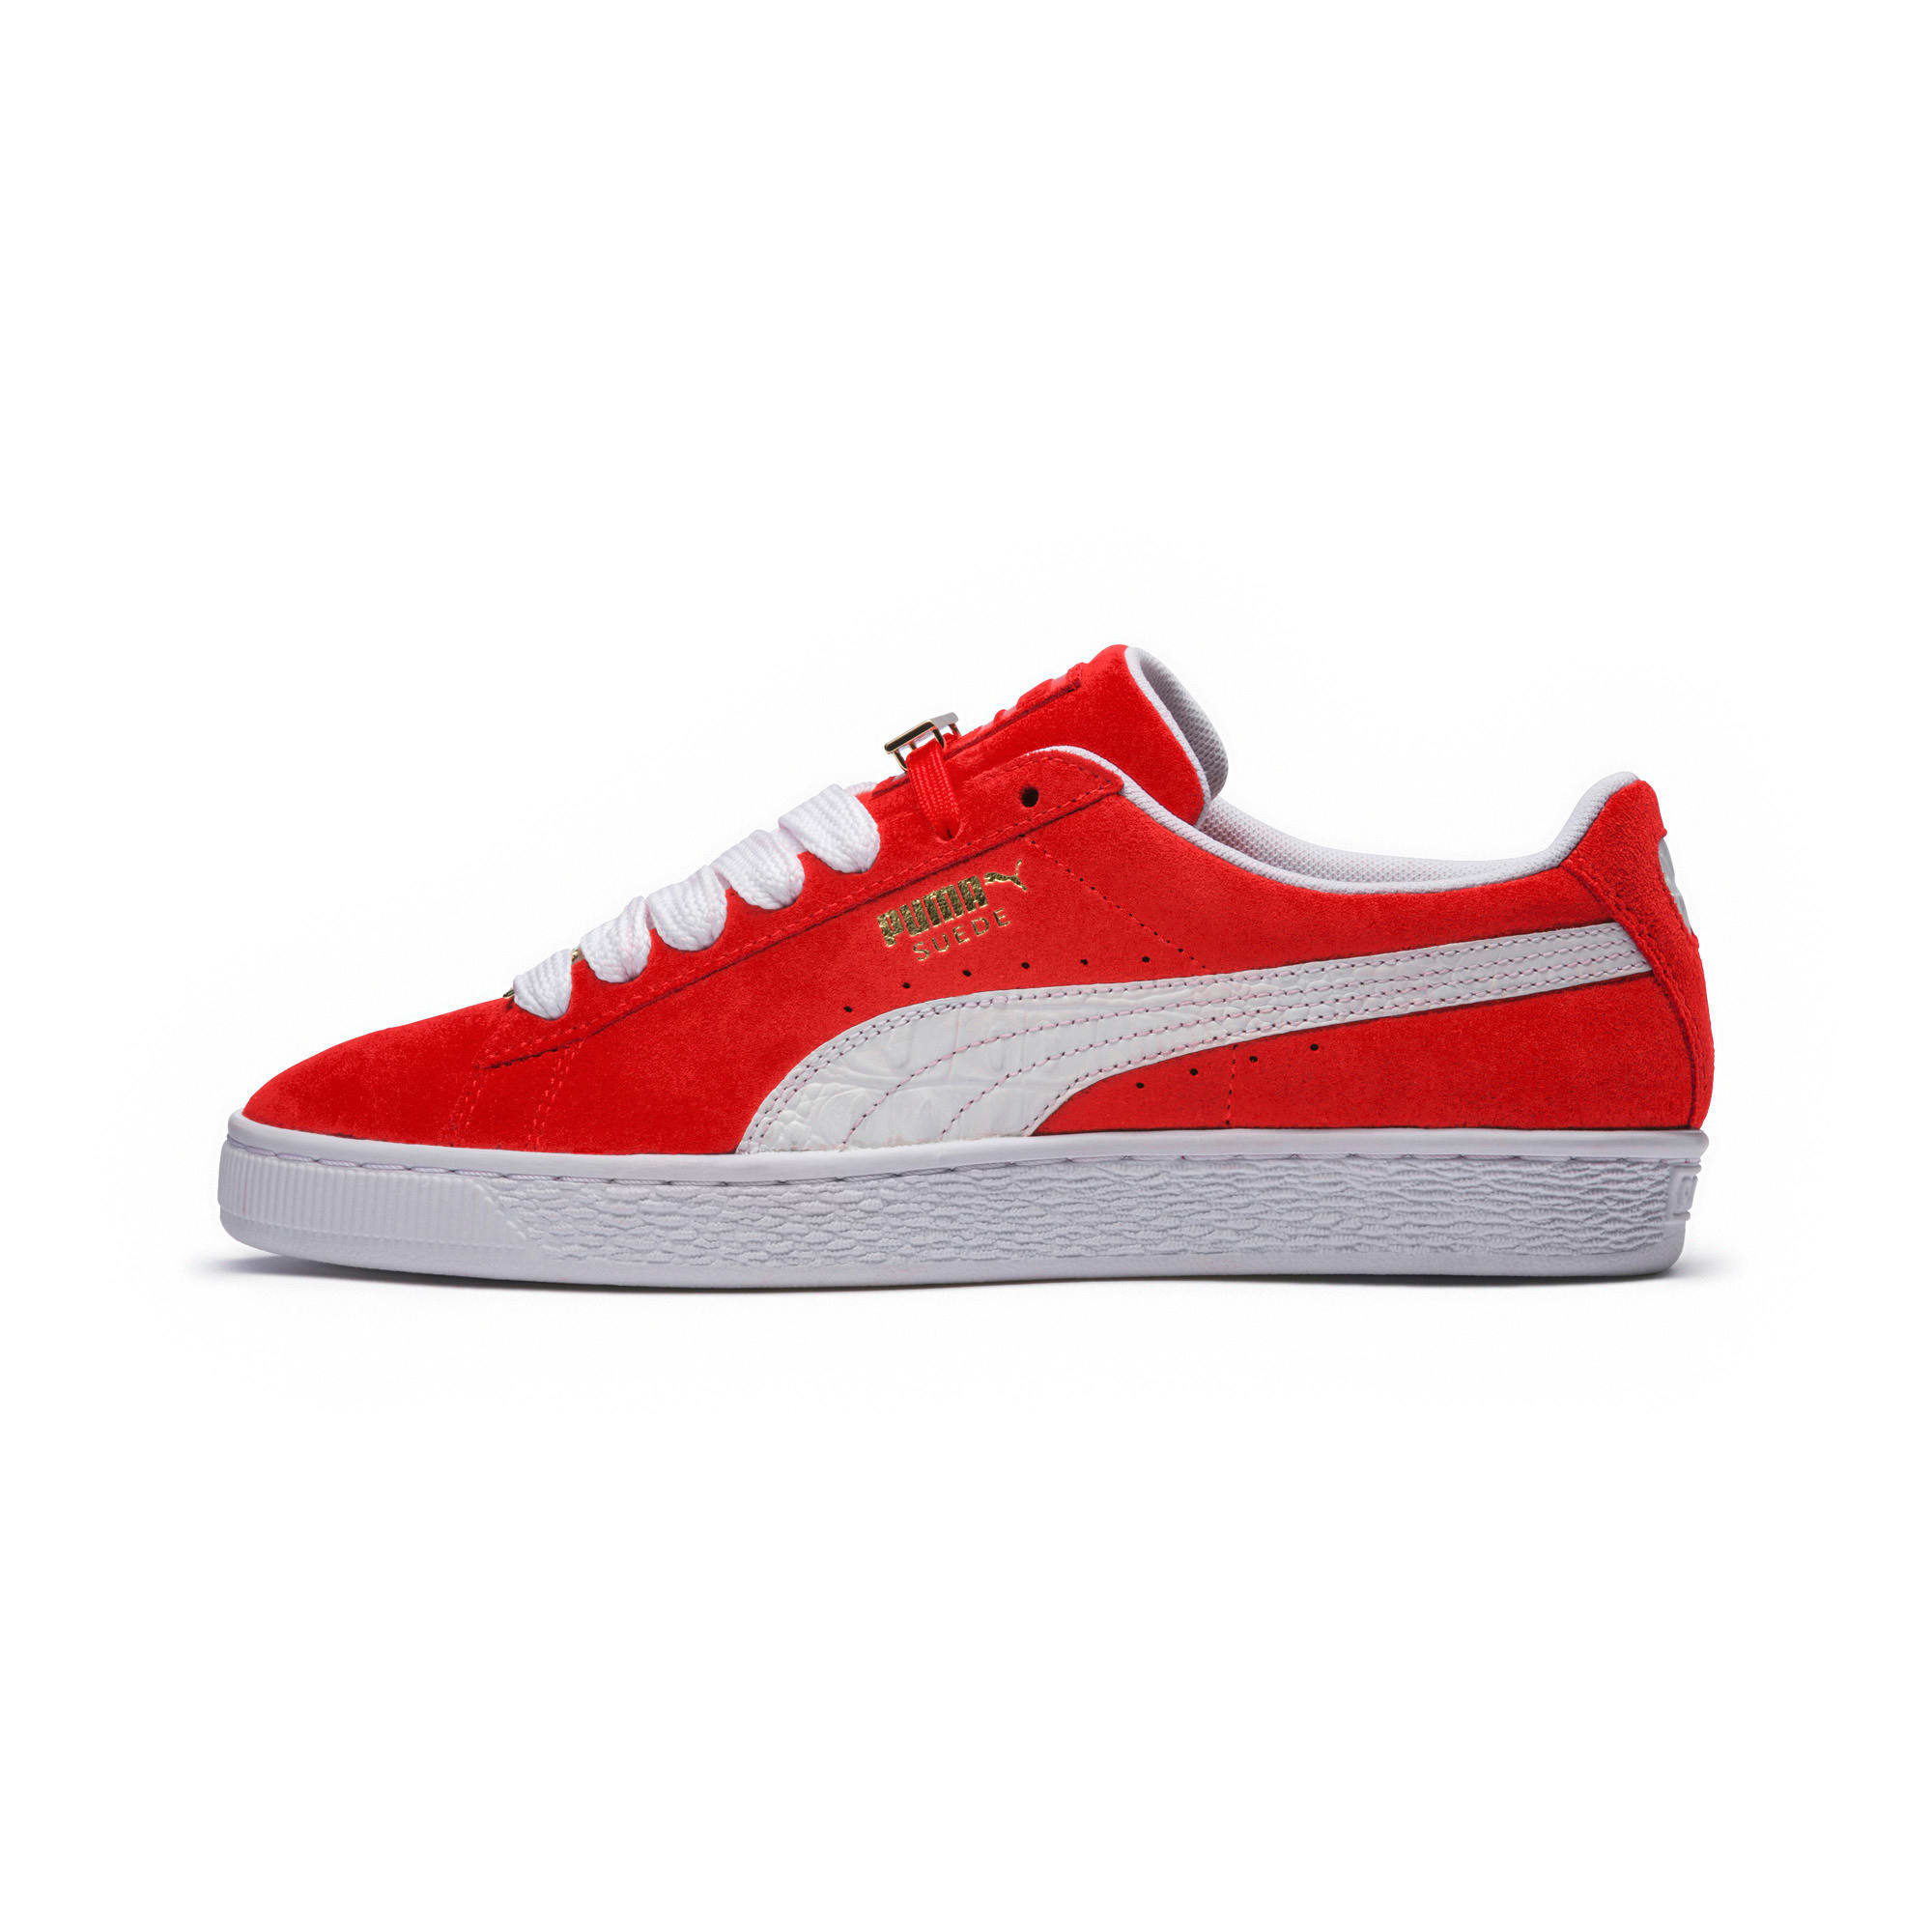 Thumbnail 1 of Suede Classic B-BOY Fabulous Trainers, Flame Scarlet-Puma White, medium-IND